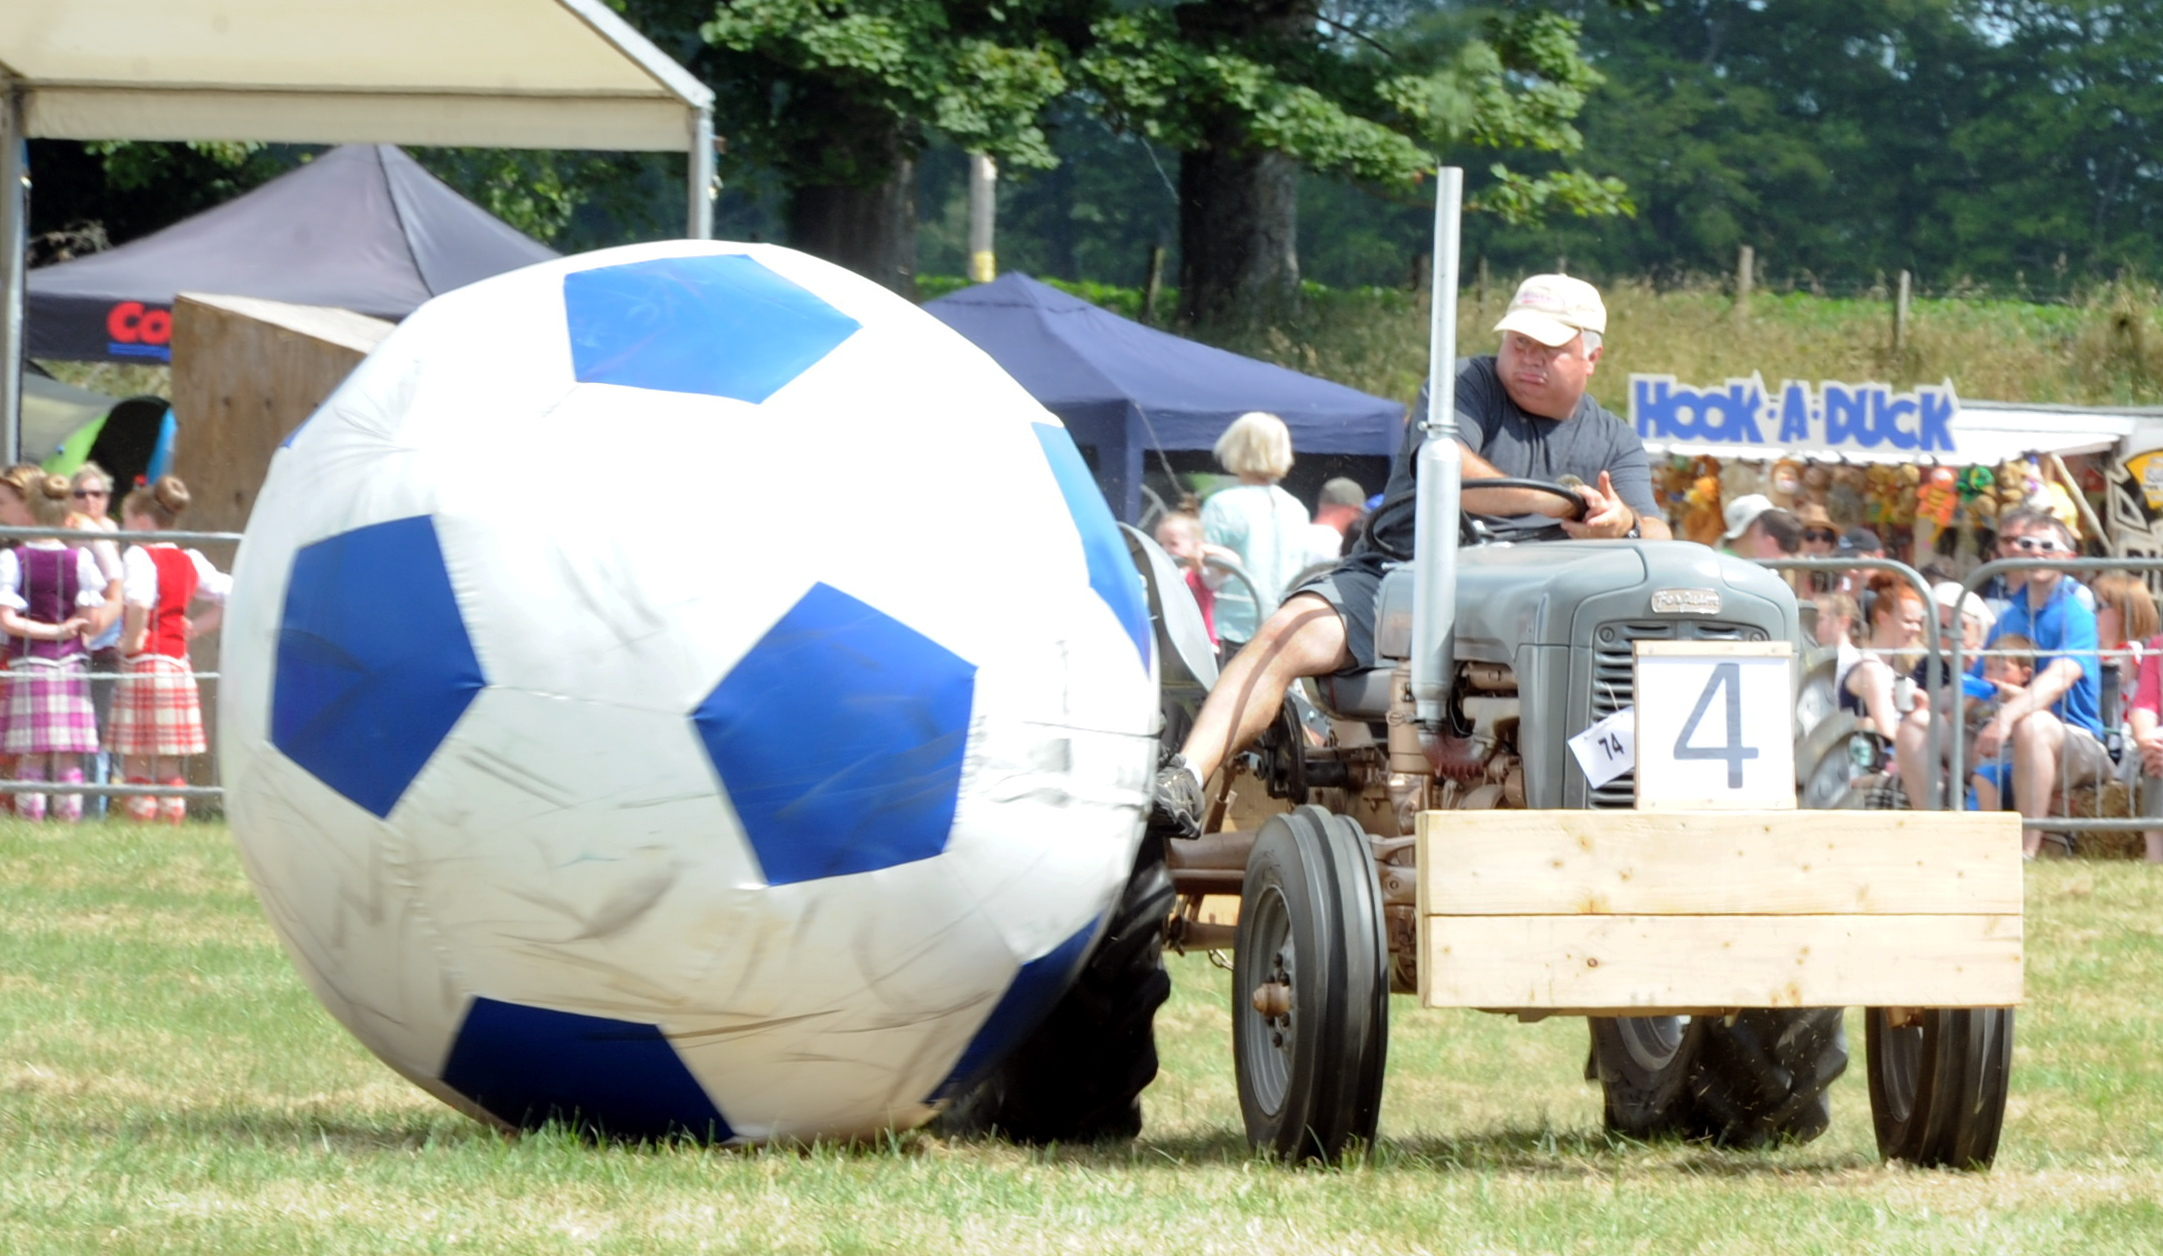 Thousands flocked to see the vintage tractor football at the 2018 Fettercairn Show. Picture by Jim Irvine